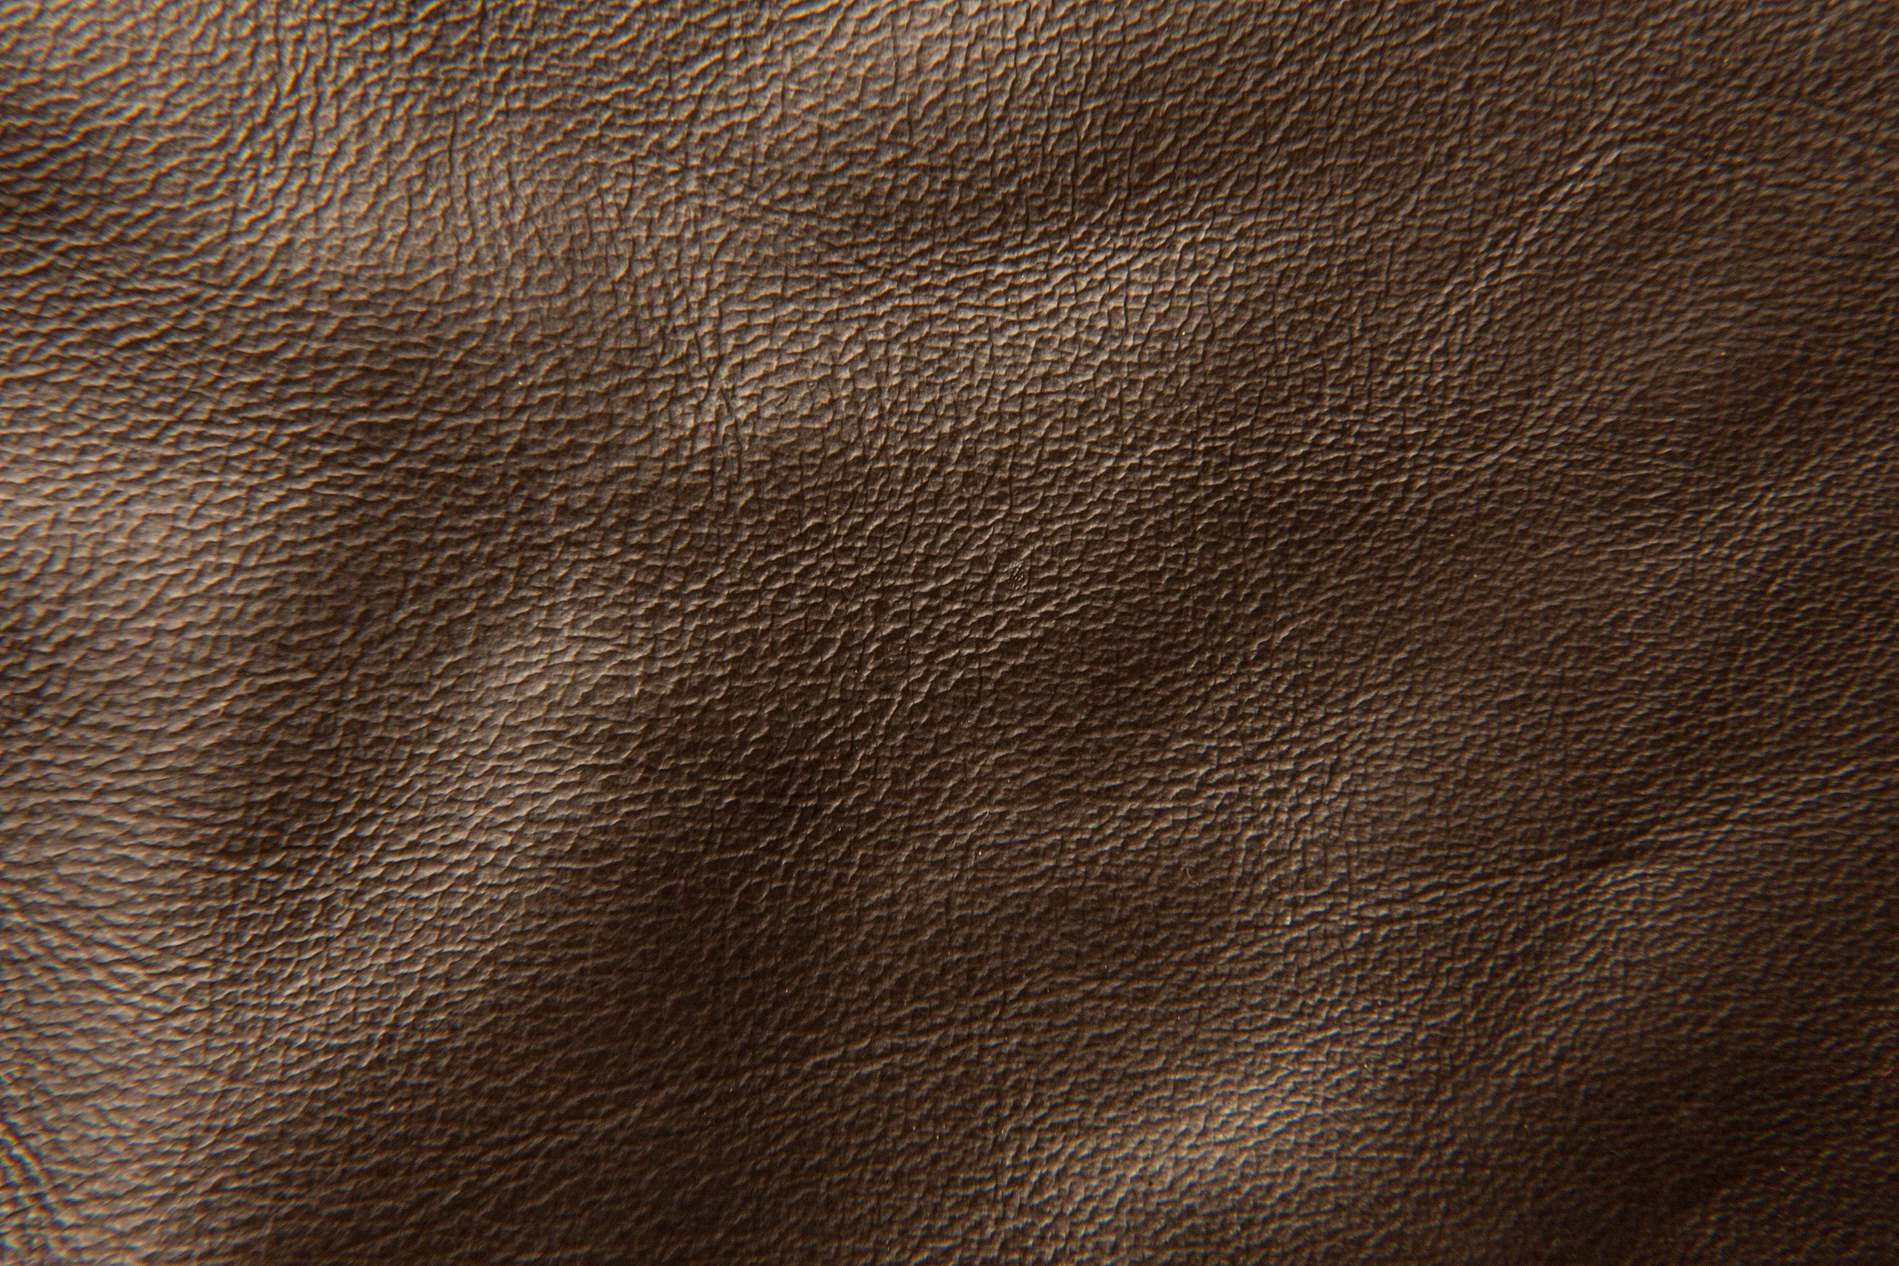 Dark Brown Leather Texture - PhotoHDX for Brown Leather Texture Hd  587fsj